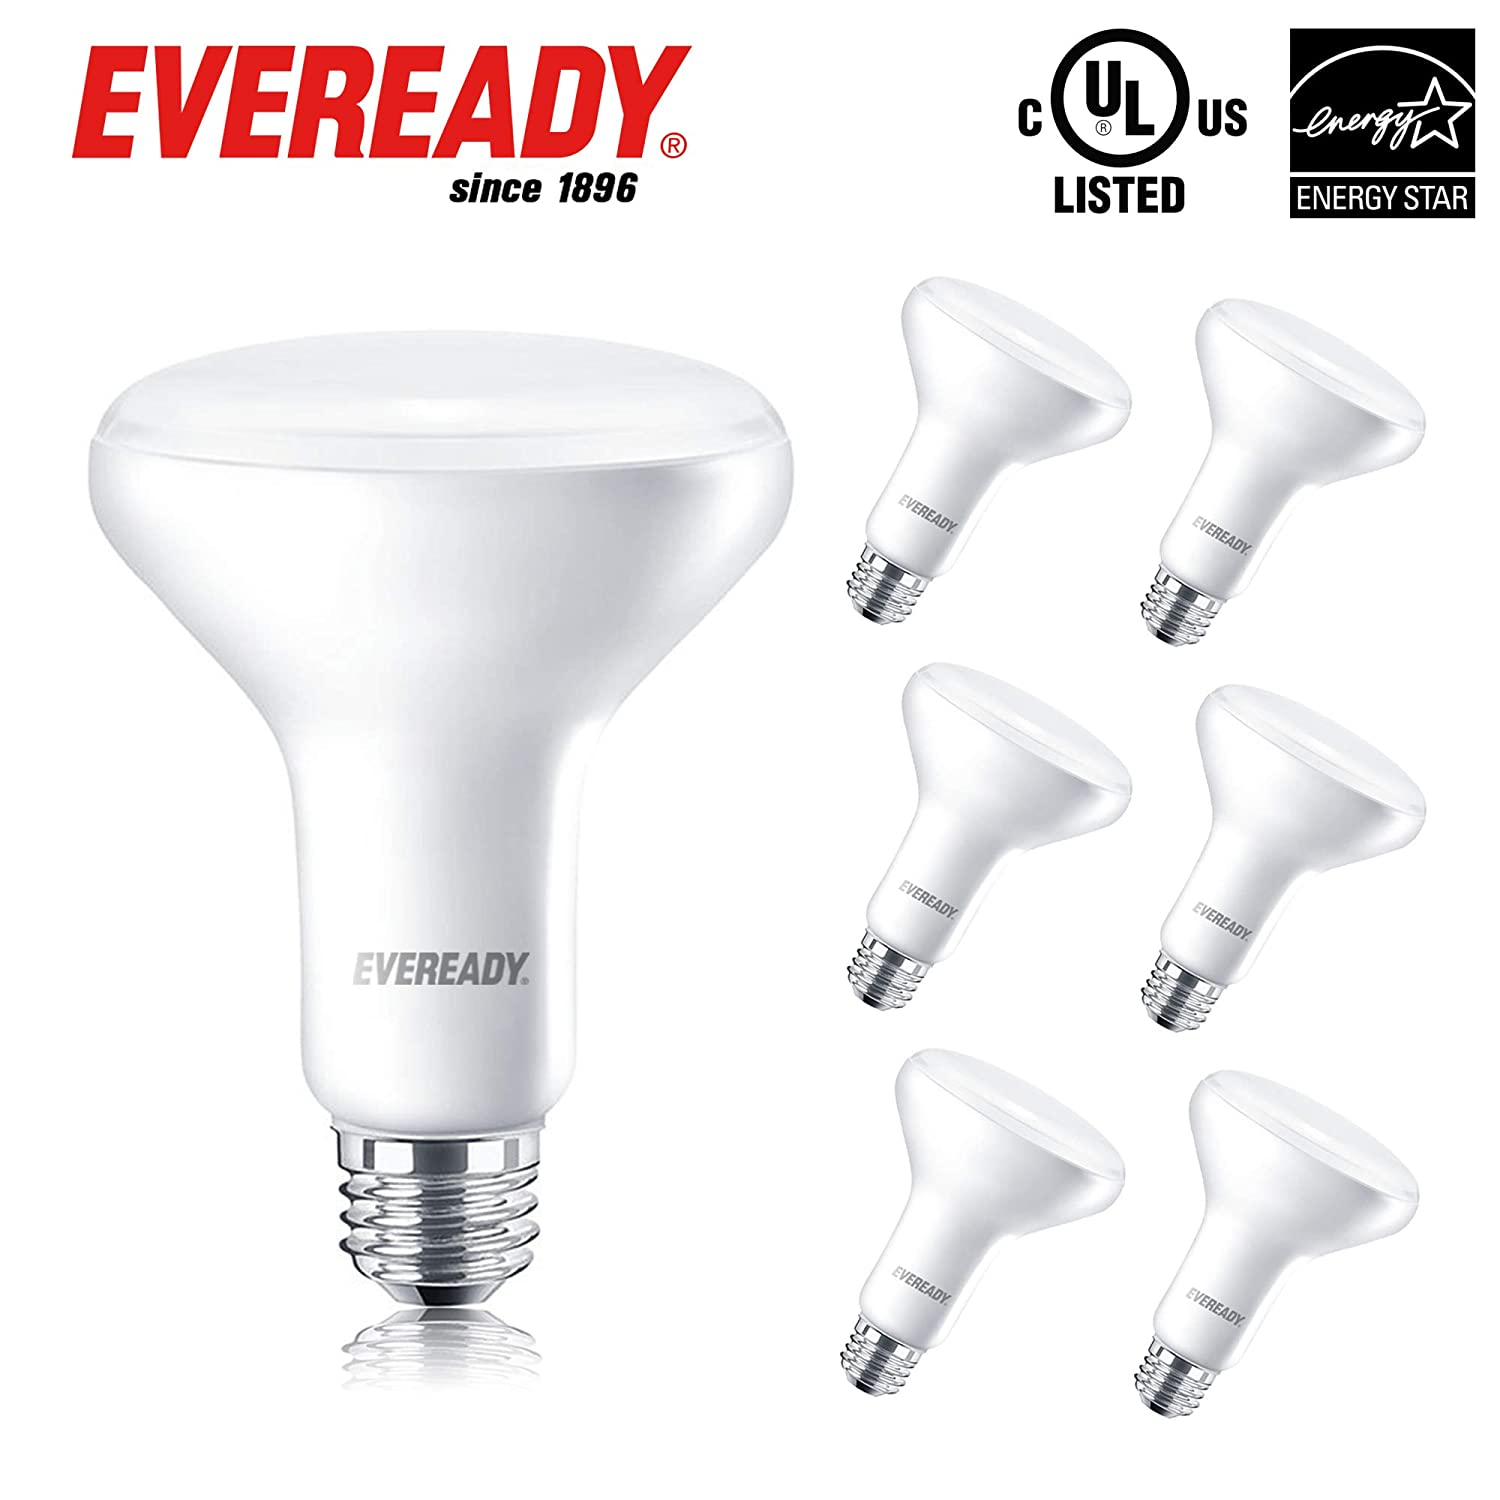 850 Lumens Energy Star Certified UL Listed 24 Pack Eveready BR30 LED Dimmable Light Bulbs 10W Flood Light 65W Equivalent E26 Base 2700K Soft White Color 25,000 Hours Lighting Lifespan